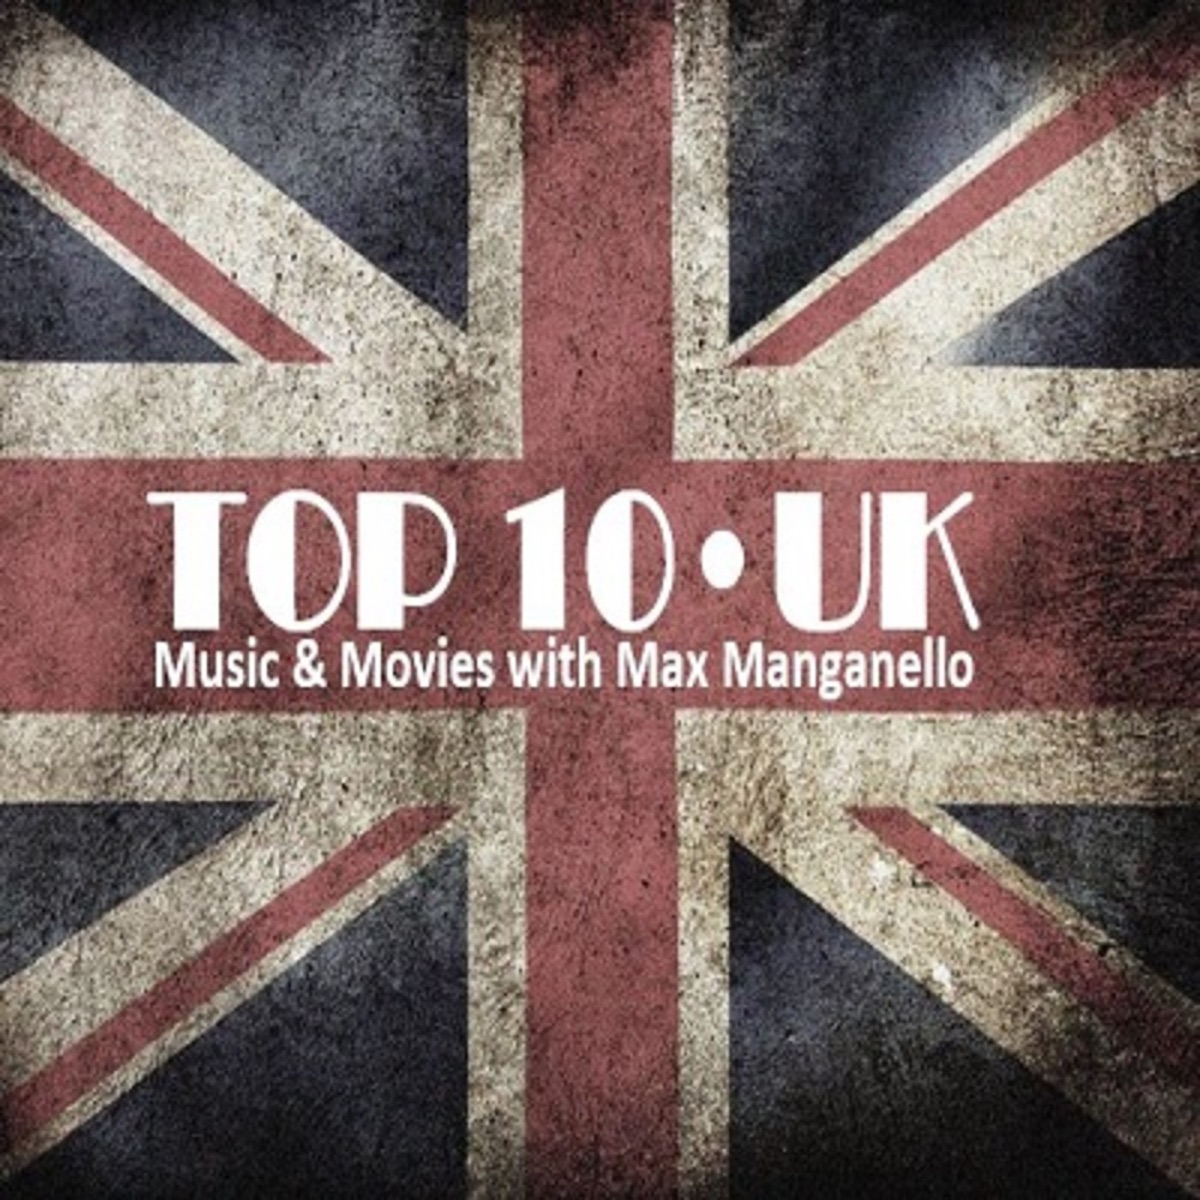 TOP10 UK - Music & Movies with Max